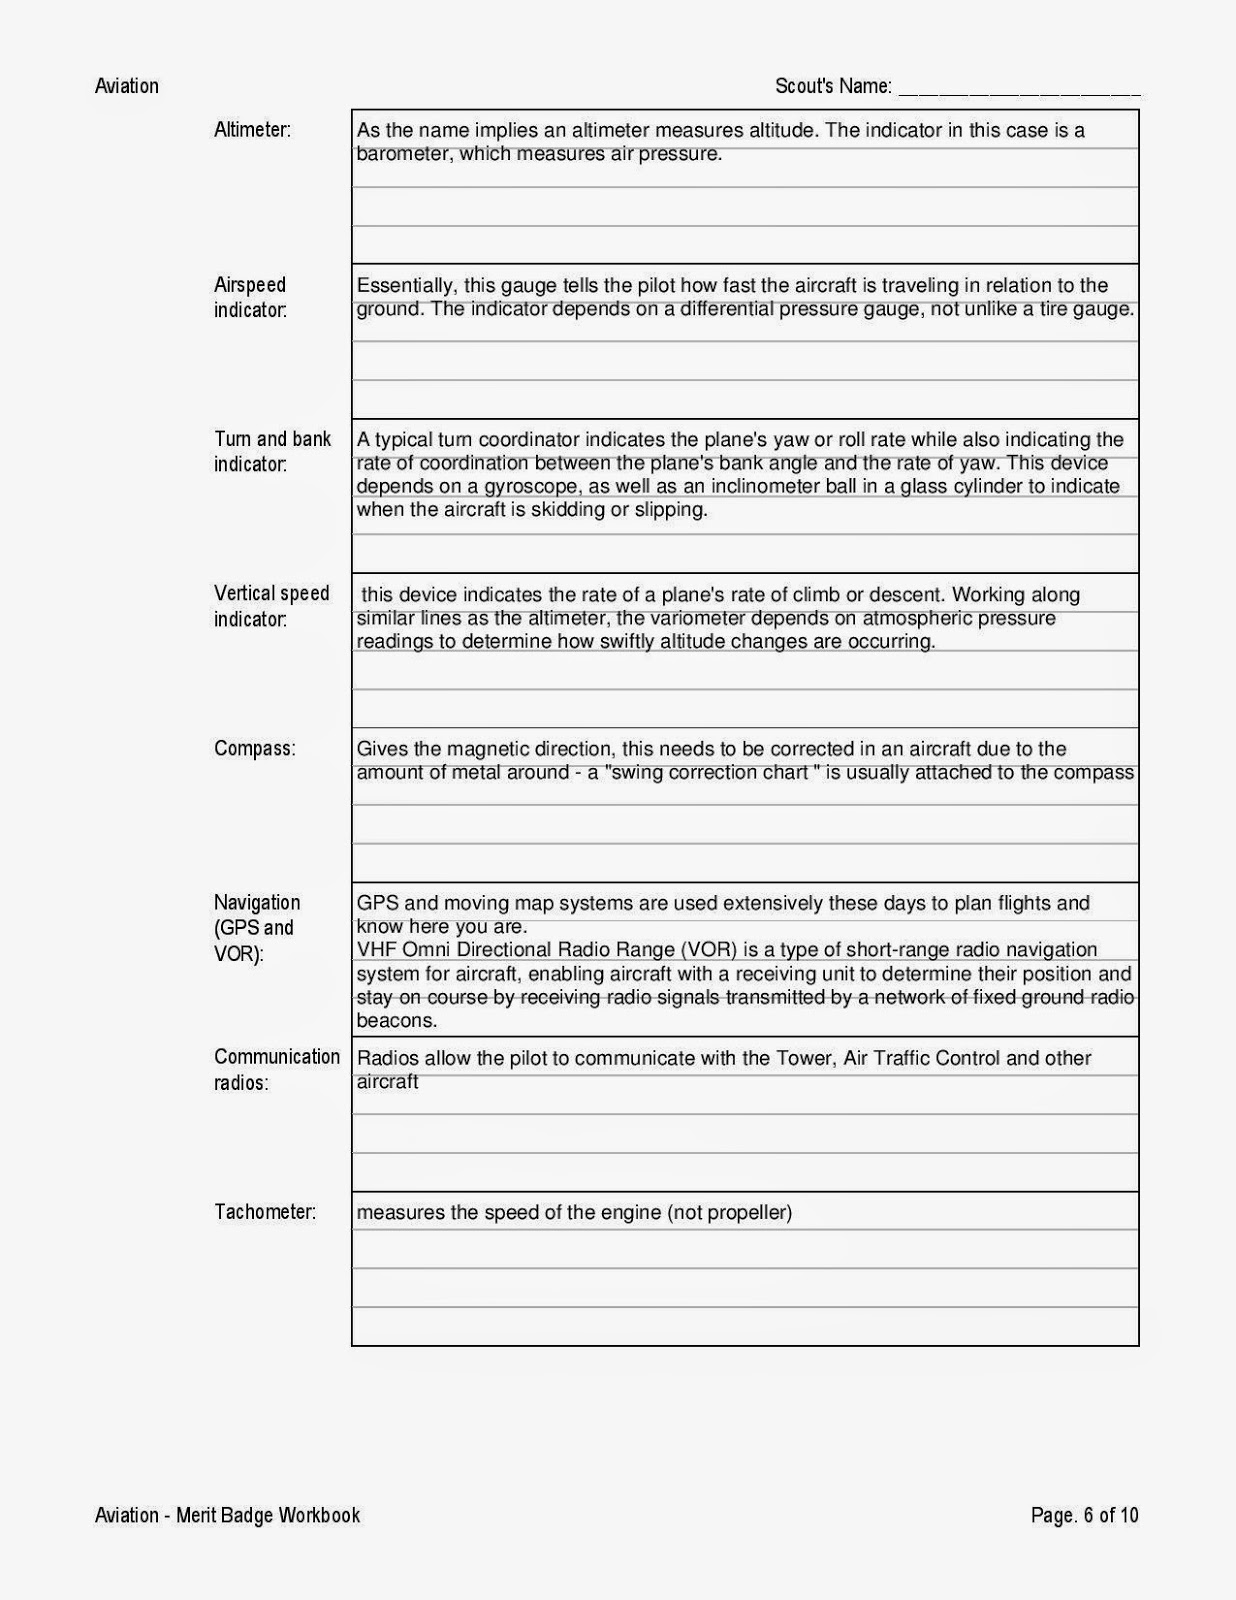 Free Worksheet Astronomy Merit Badge Worksheet Answers swimming merit badge worksheet abitlikethis boy scout troop 107 greensboro nc aviation workbook